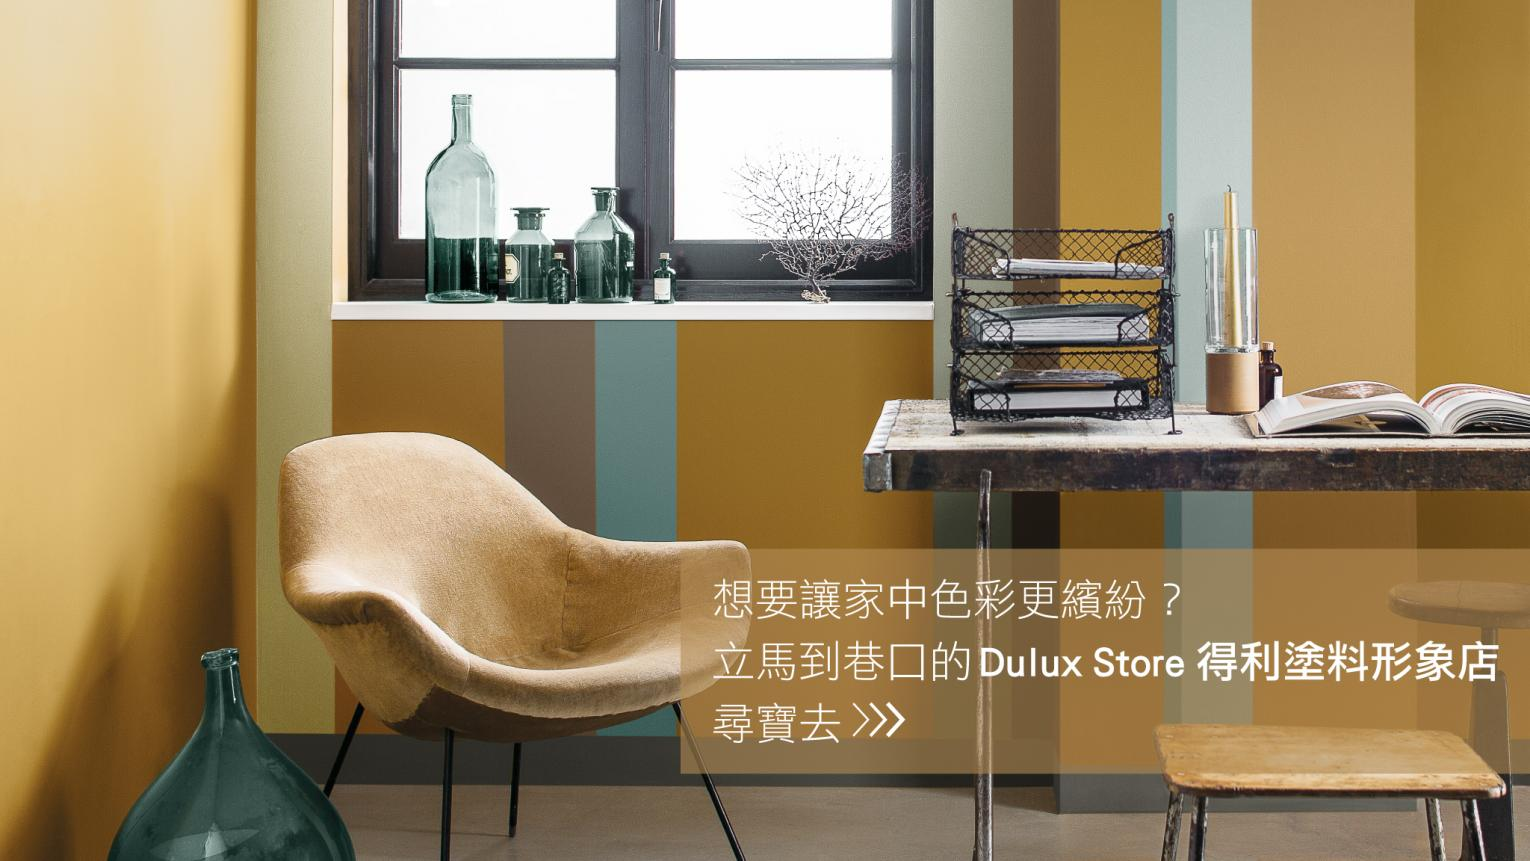 20160315 Dulux Store